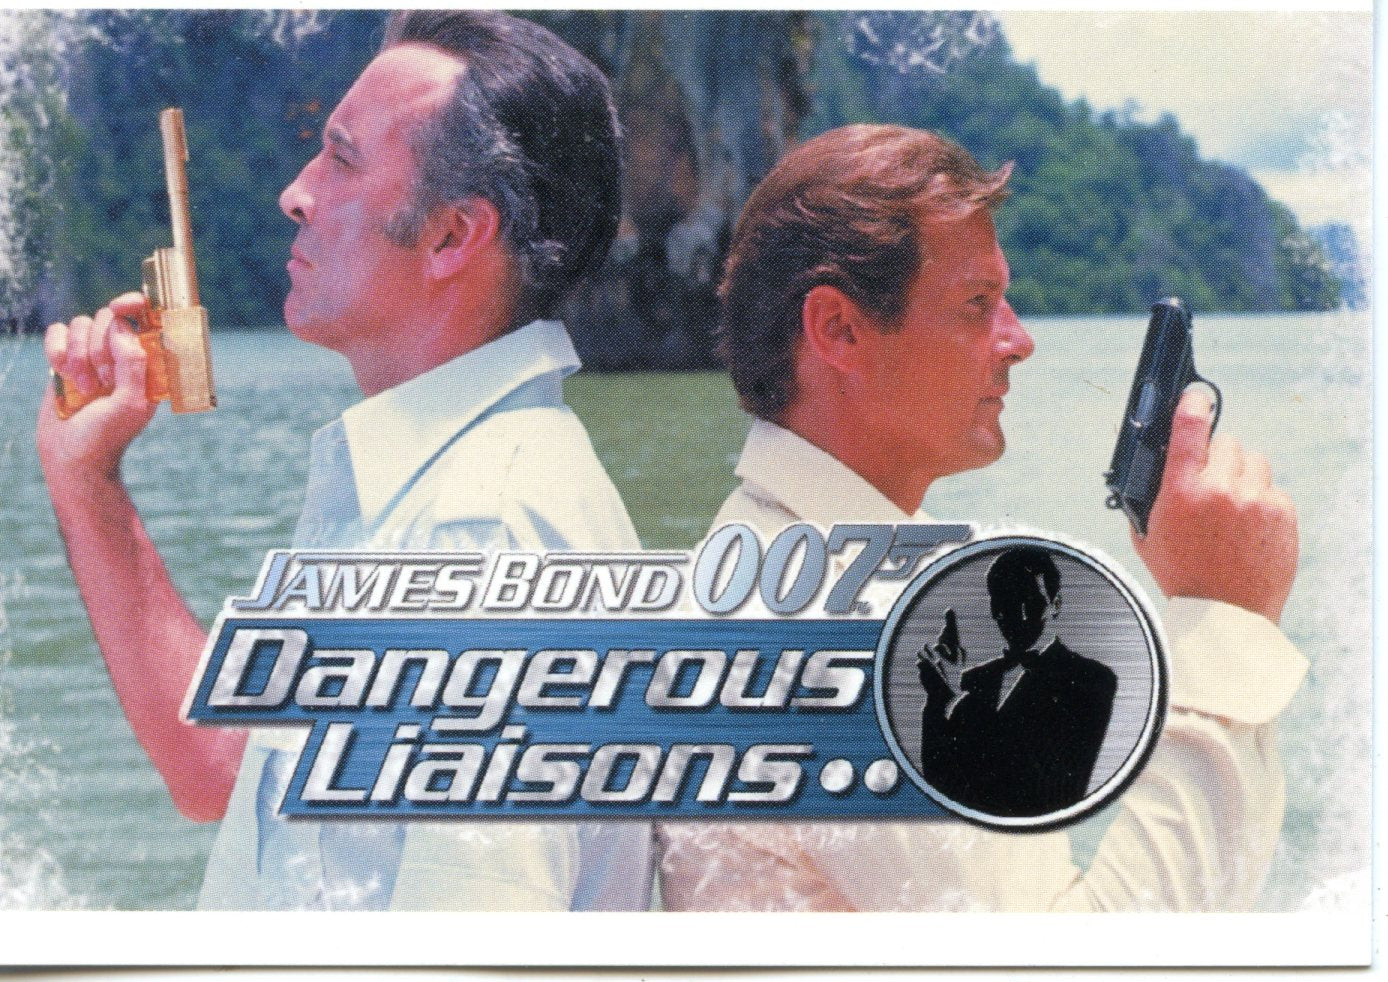 James Bond Dangerous Liaisons 2006